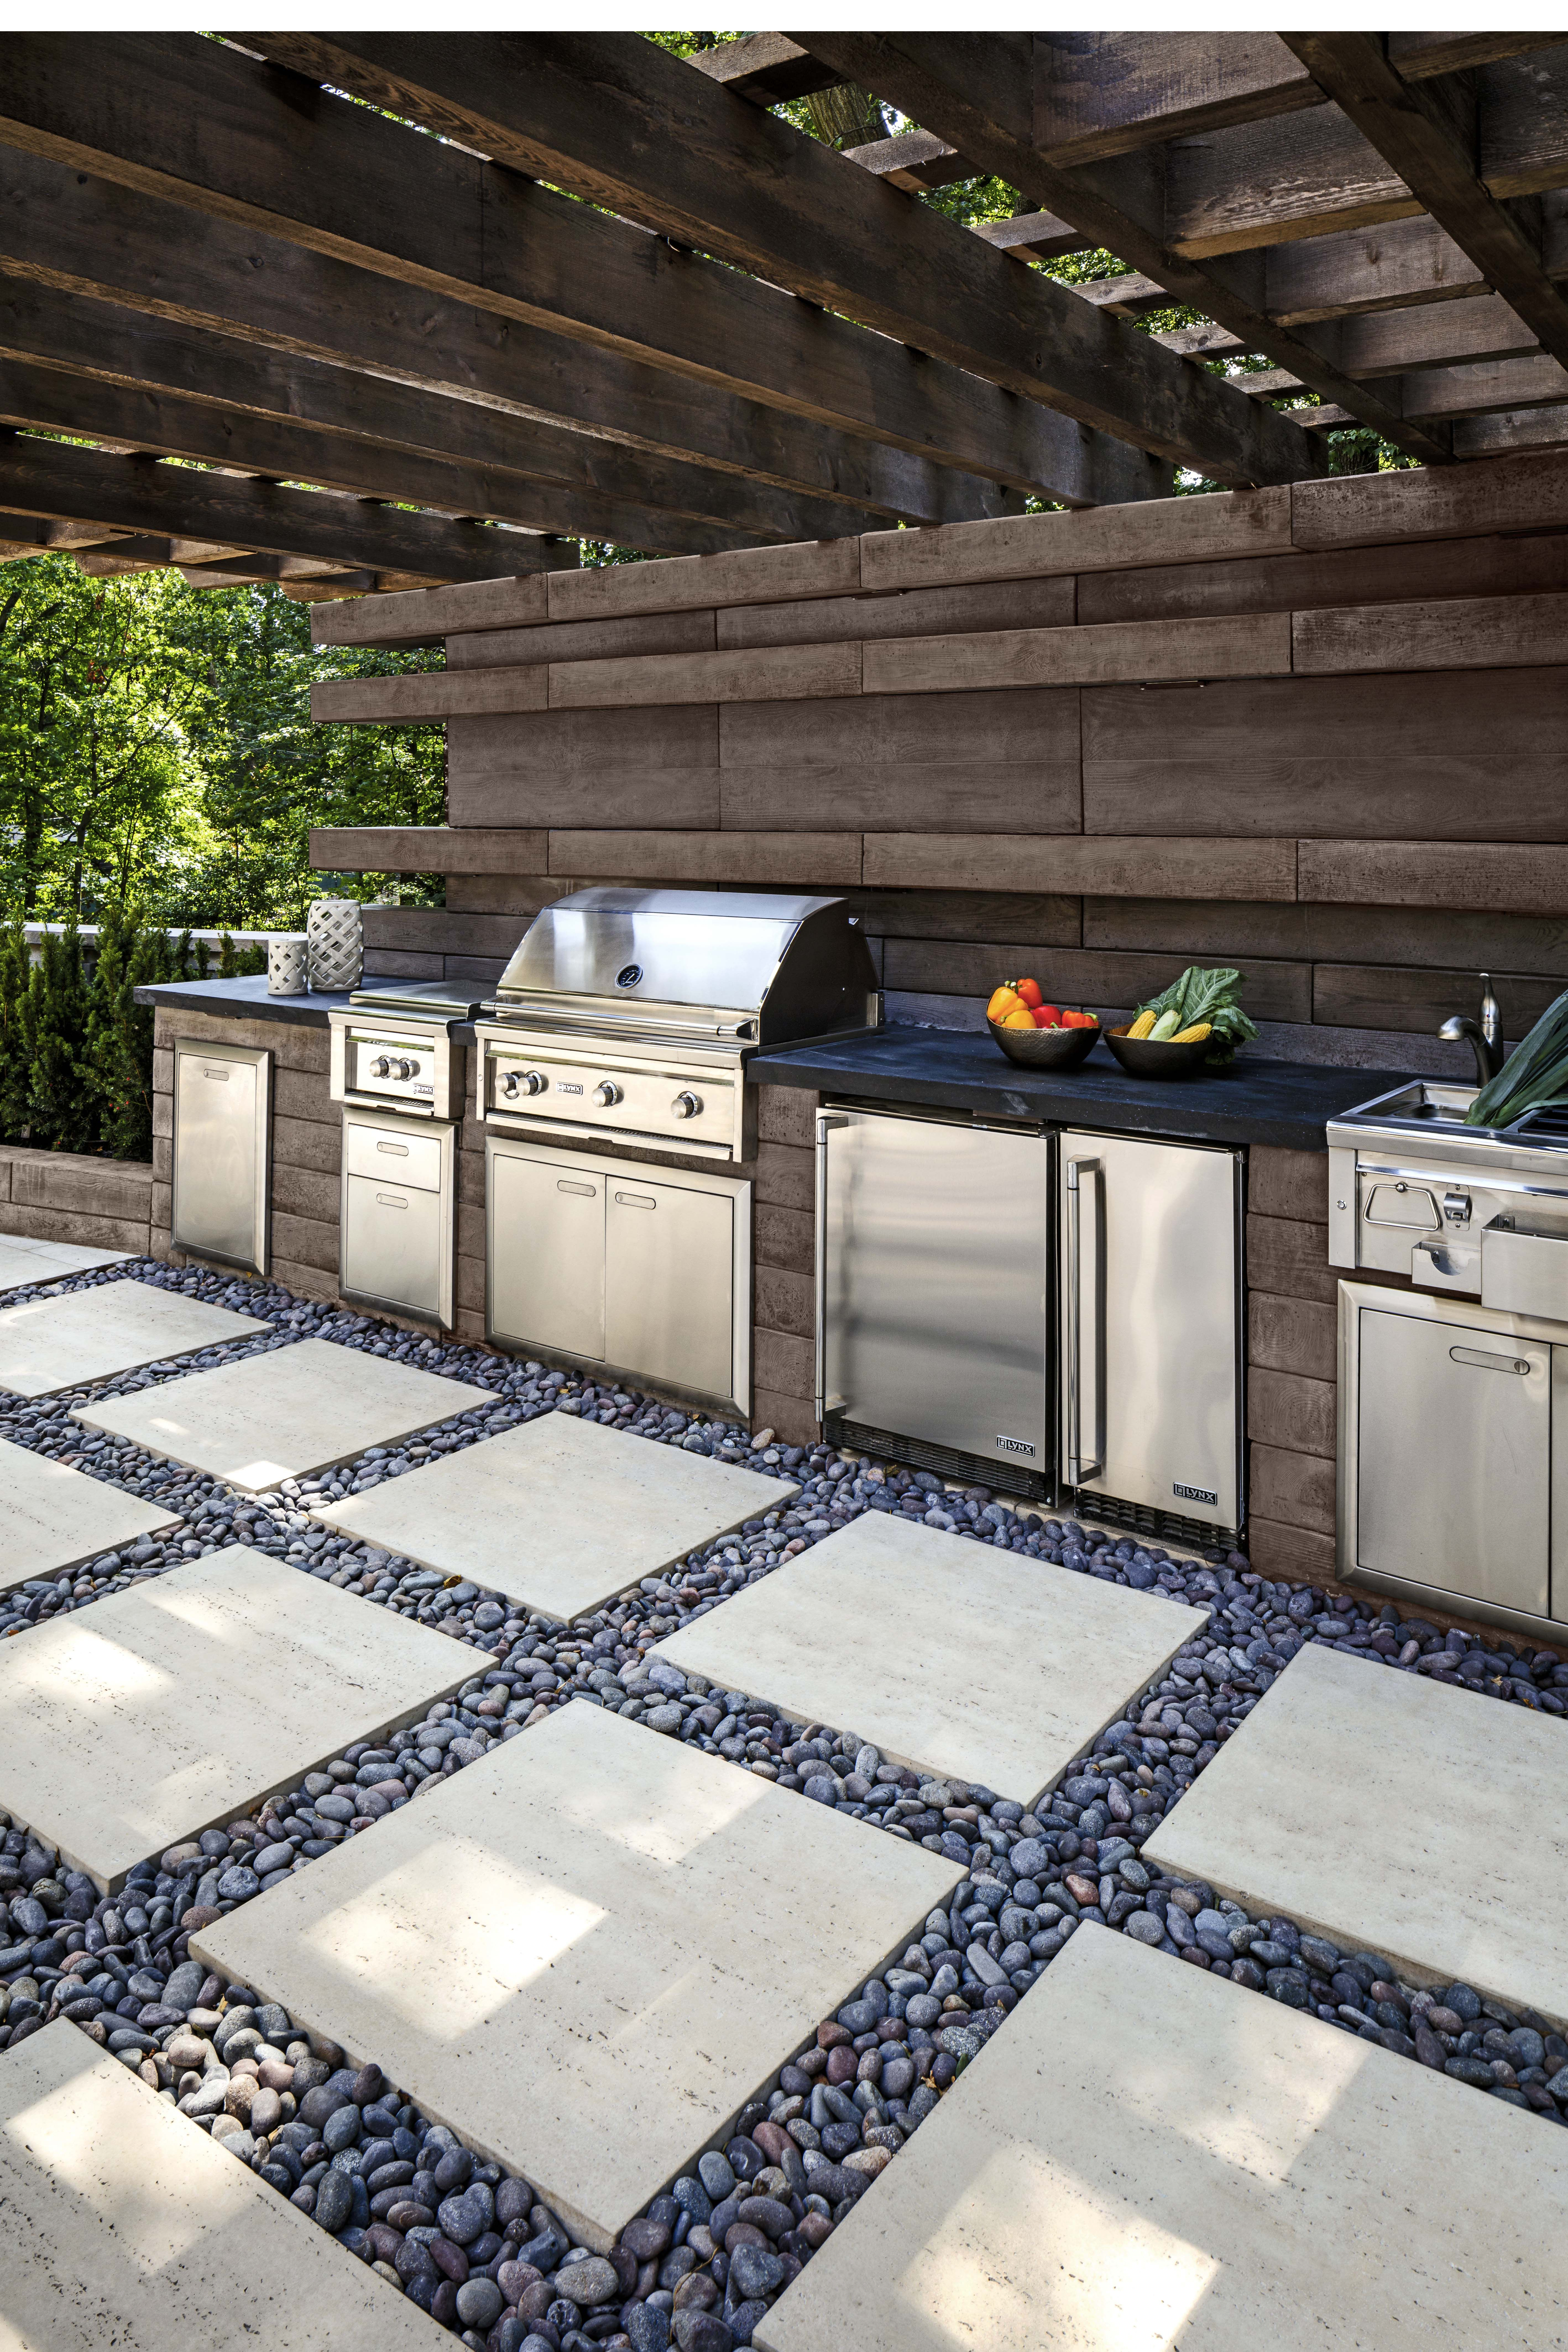 Looking for a an outdoor kitchen idea? For this landscape